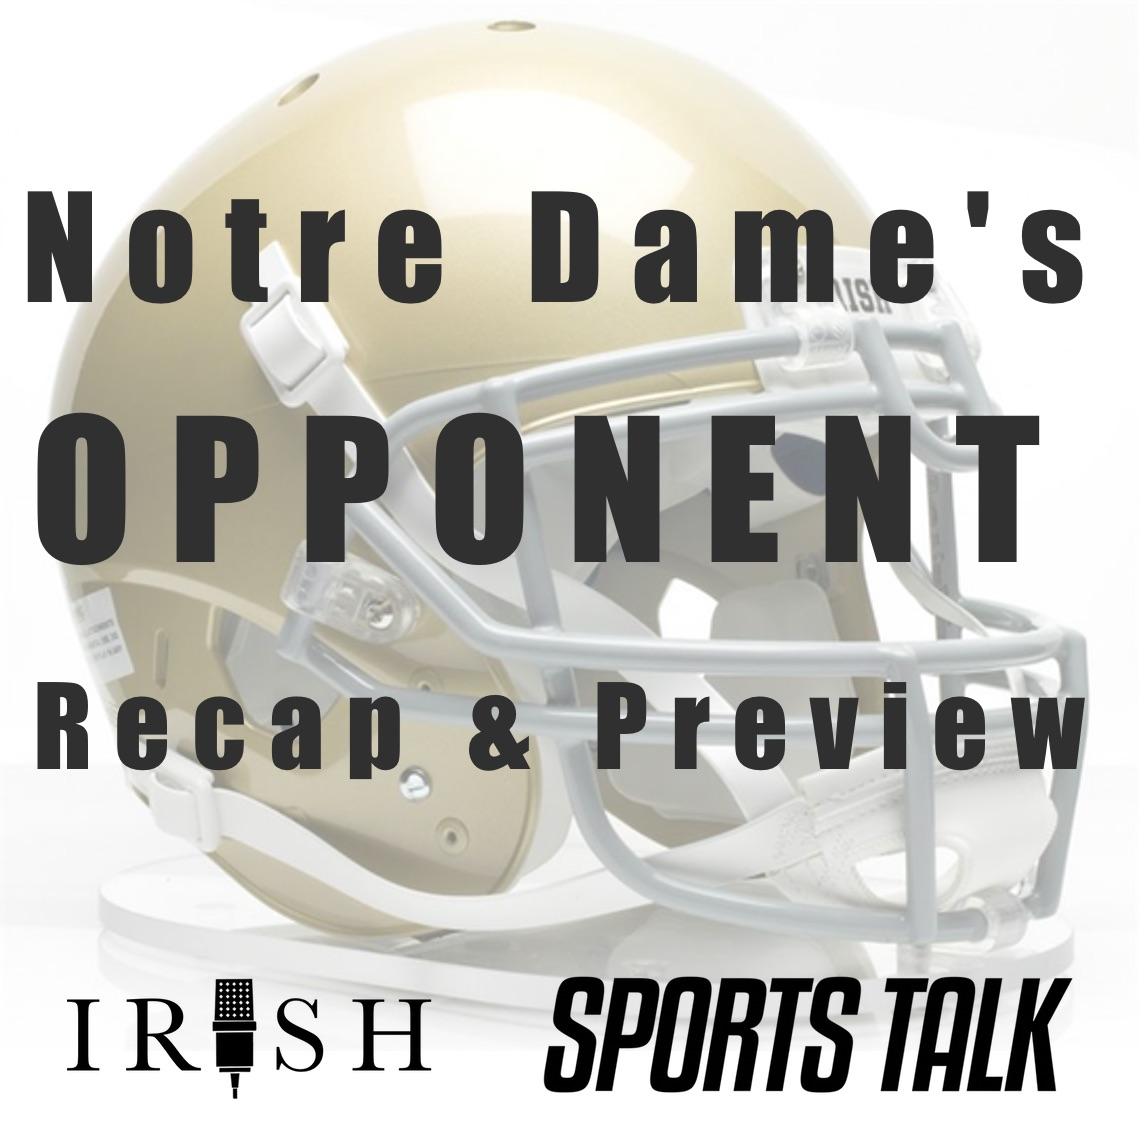 Irish Opponent Preview and Recap